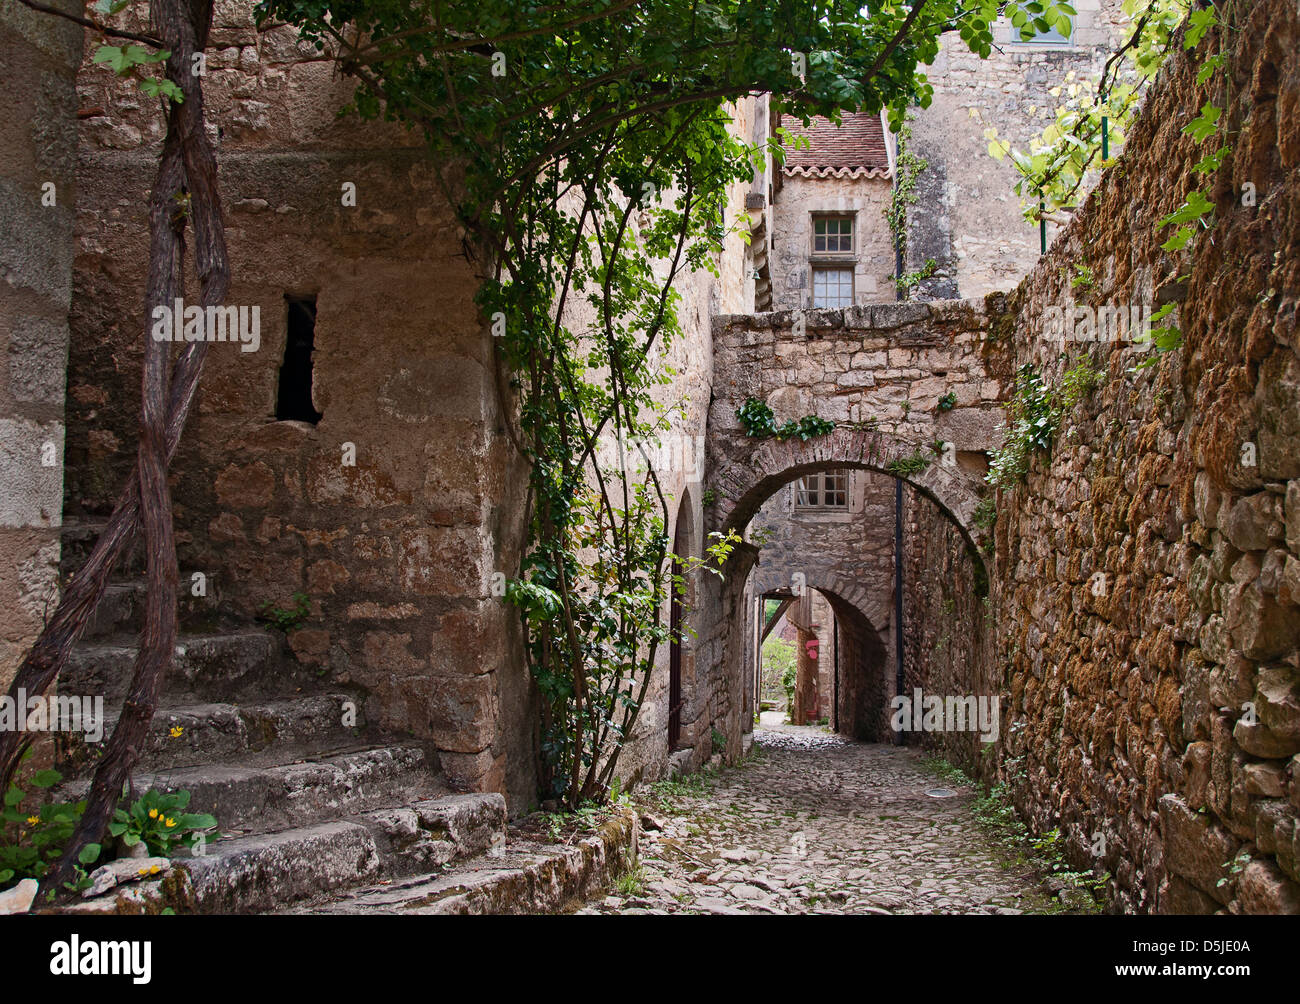 Narrow alley in French medieval village of St. Cirq Lapopie - Stock Image